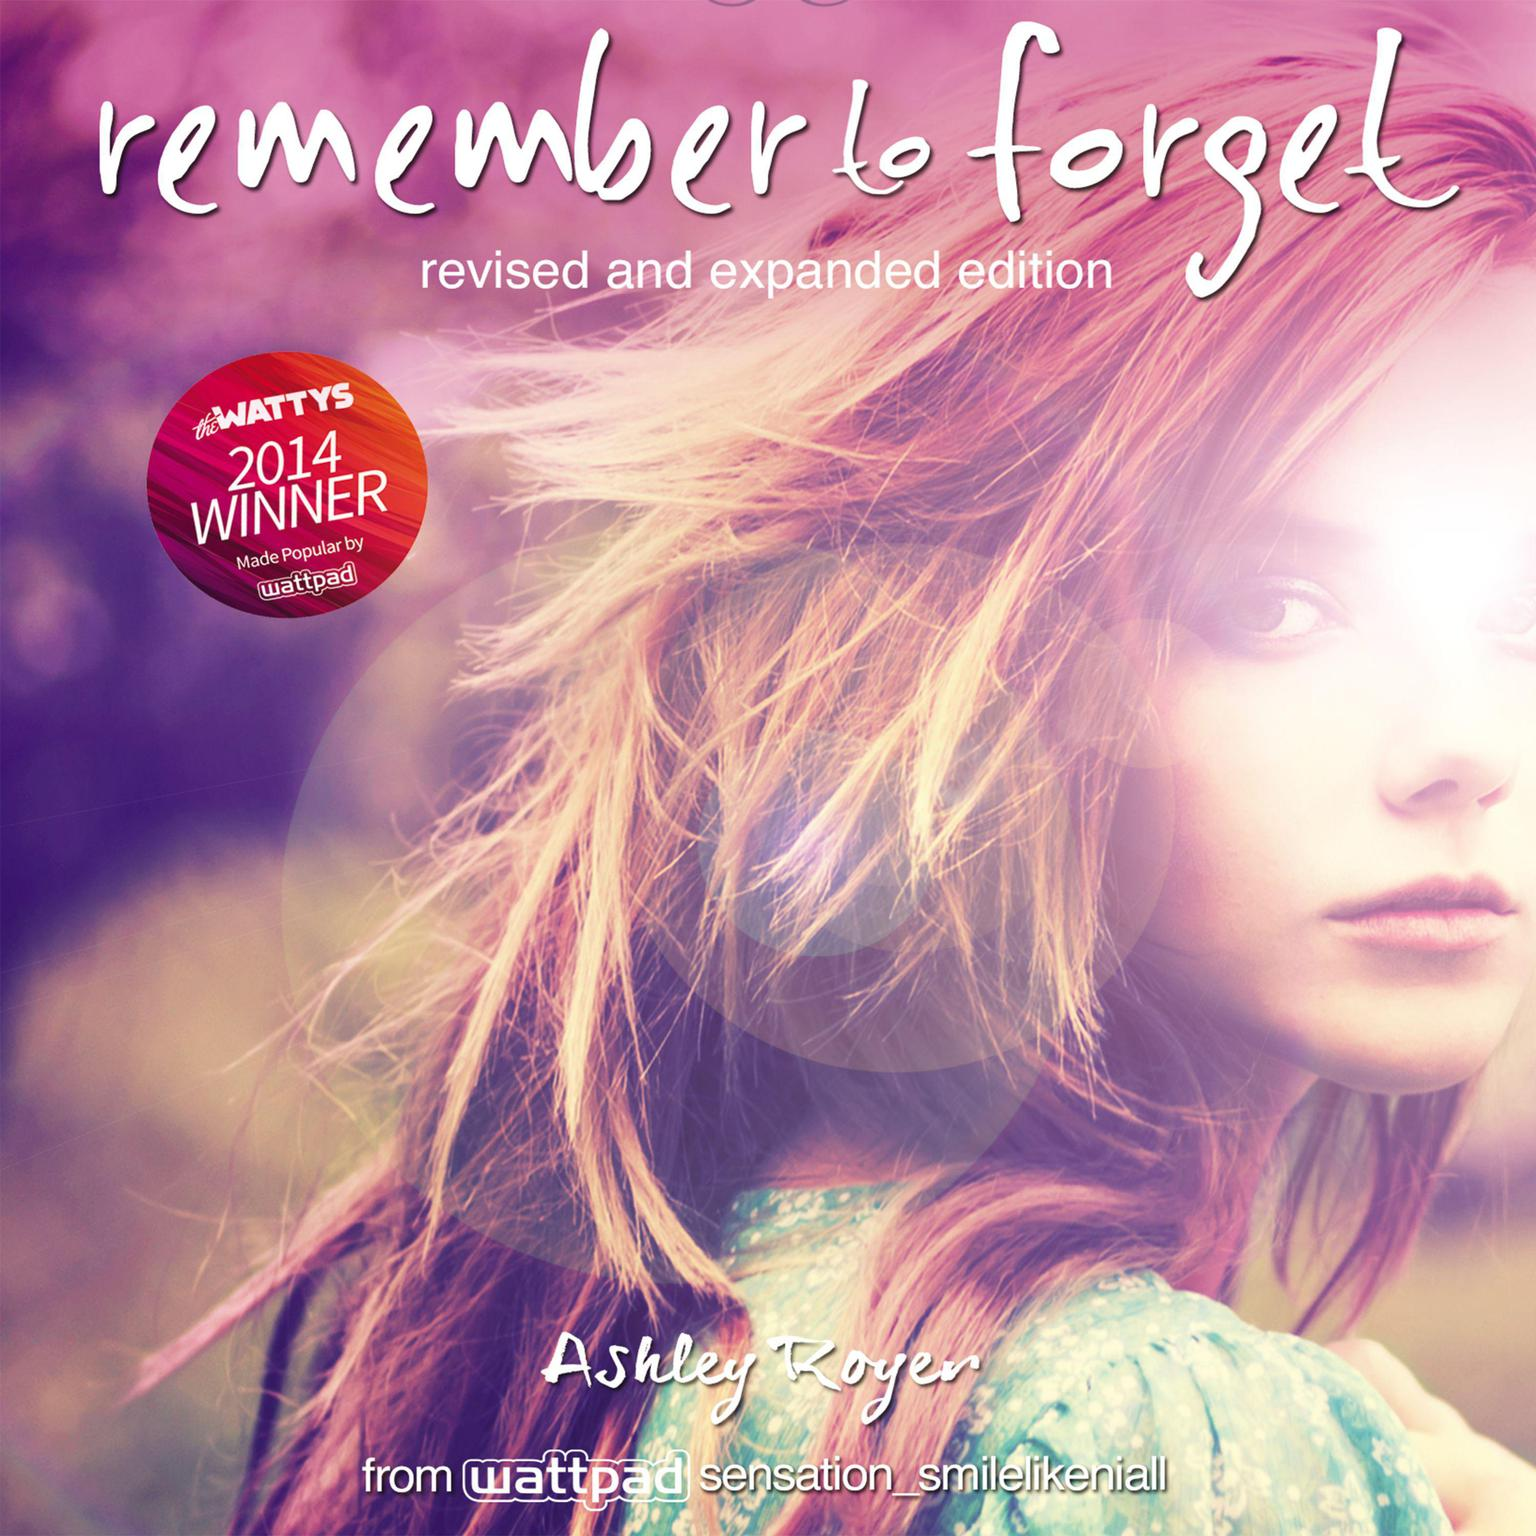 Printable Remember to Forget, Revised and Expanded Edition: from Wattpad sensation @.smilelikeniall Audiobook Cover Art